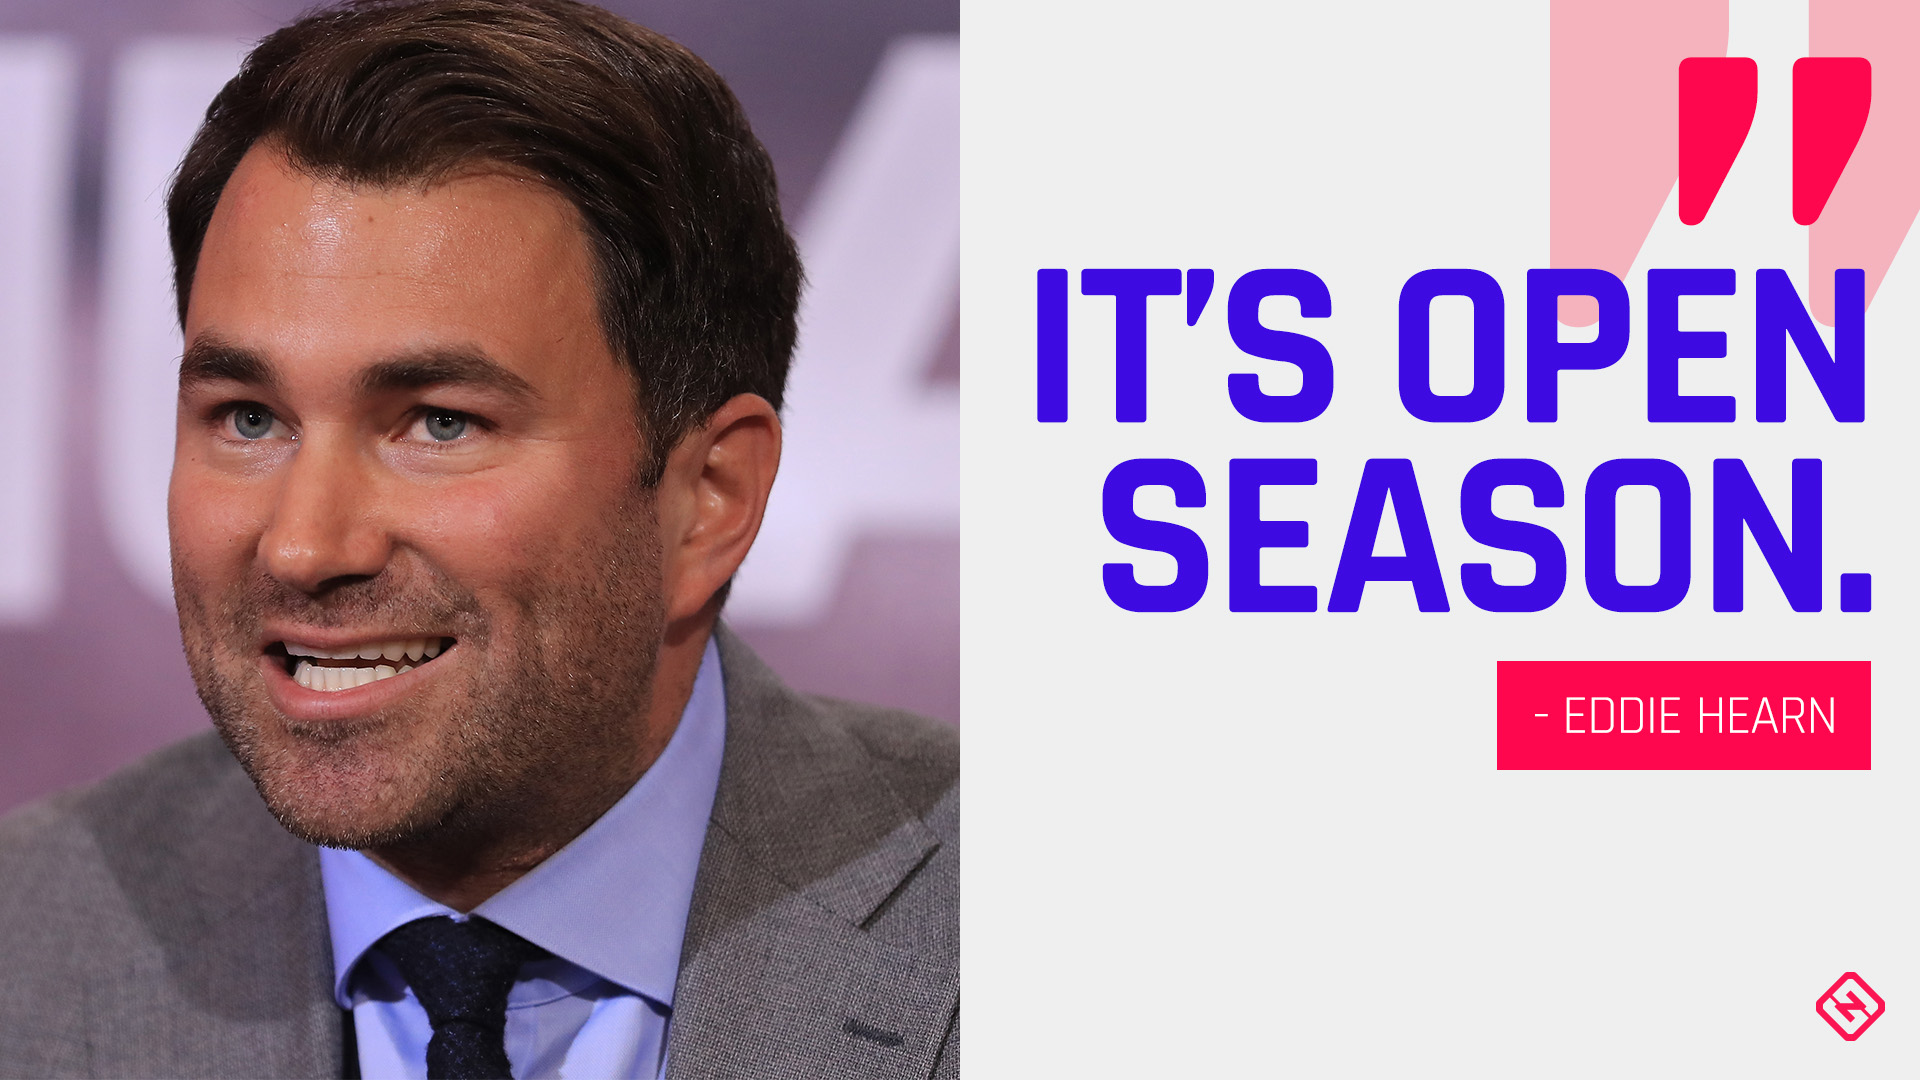 eddie-hearn-quote-ftr